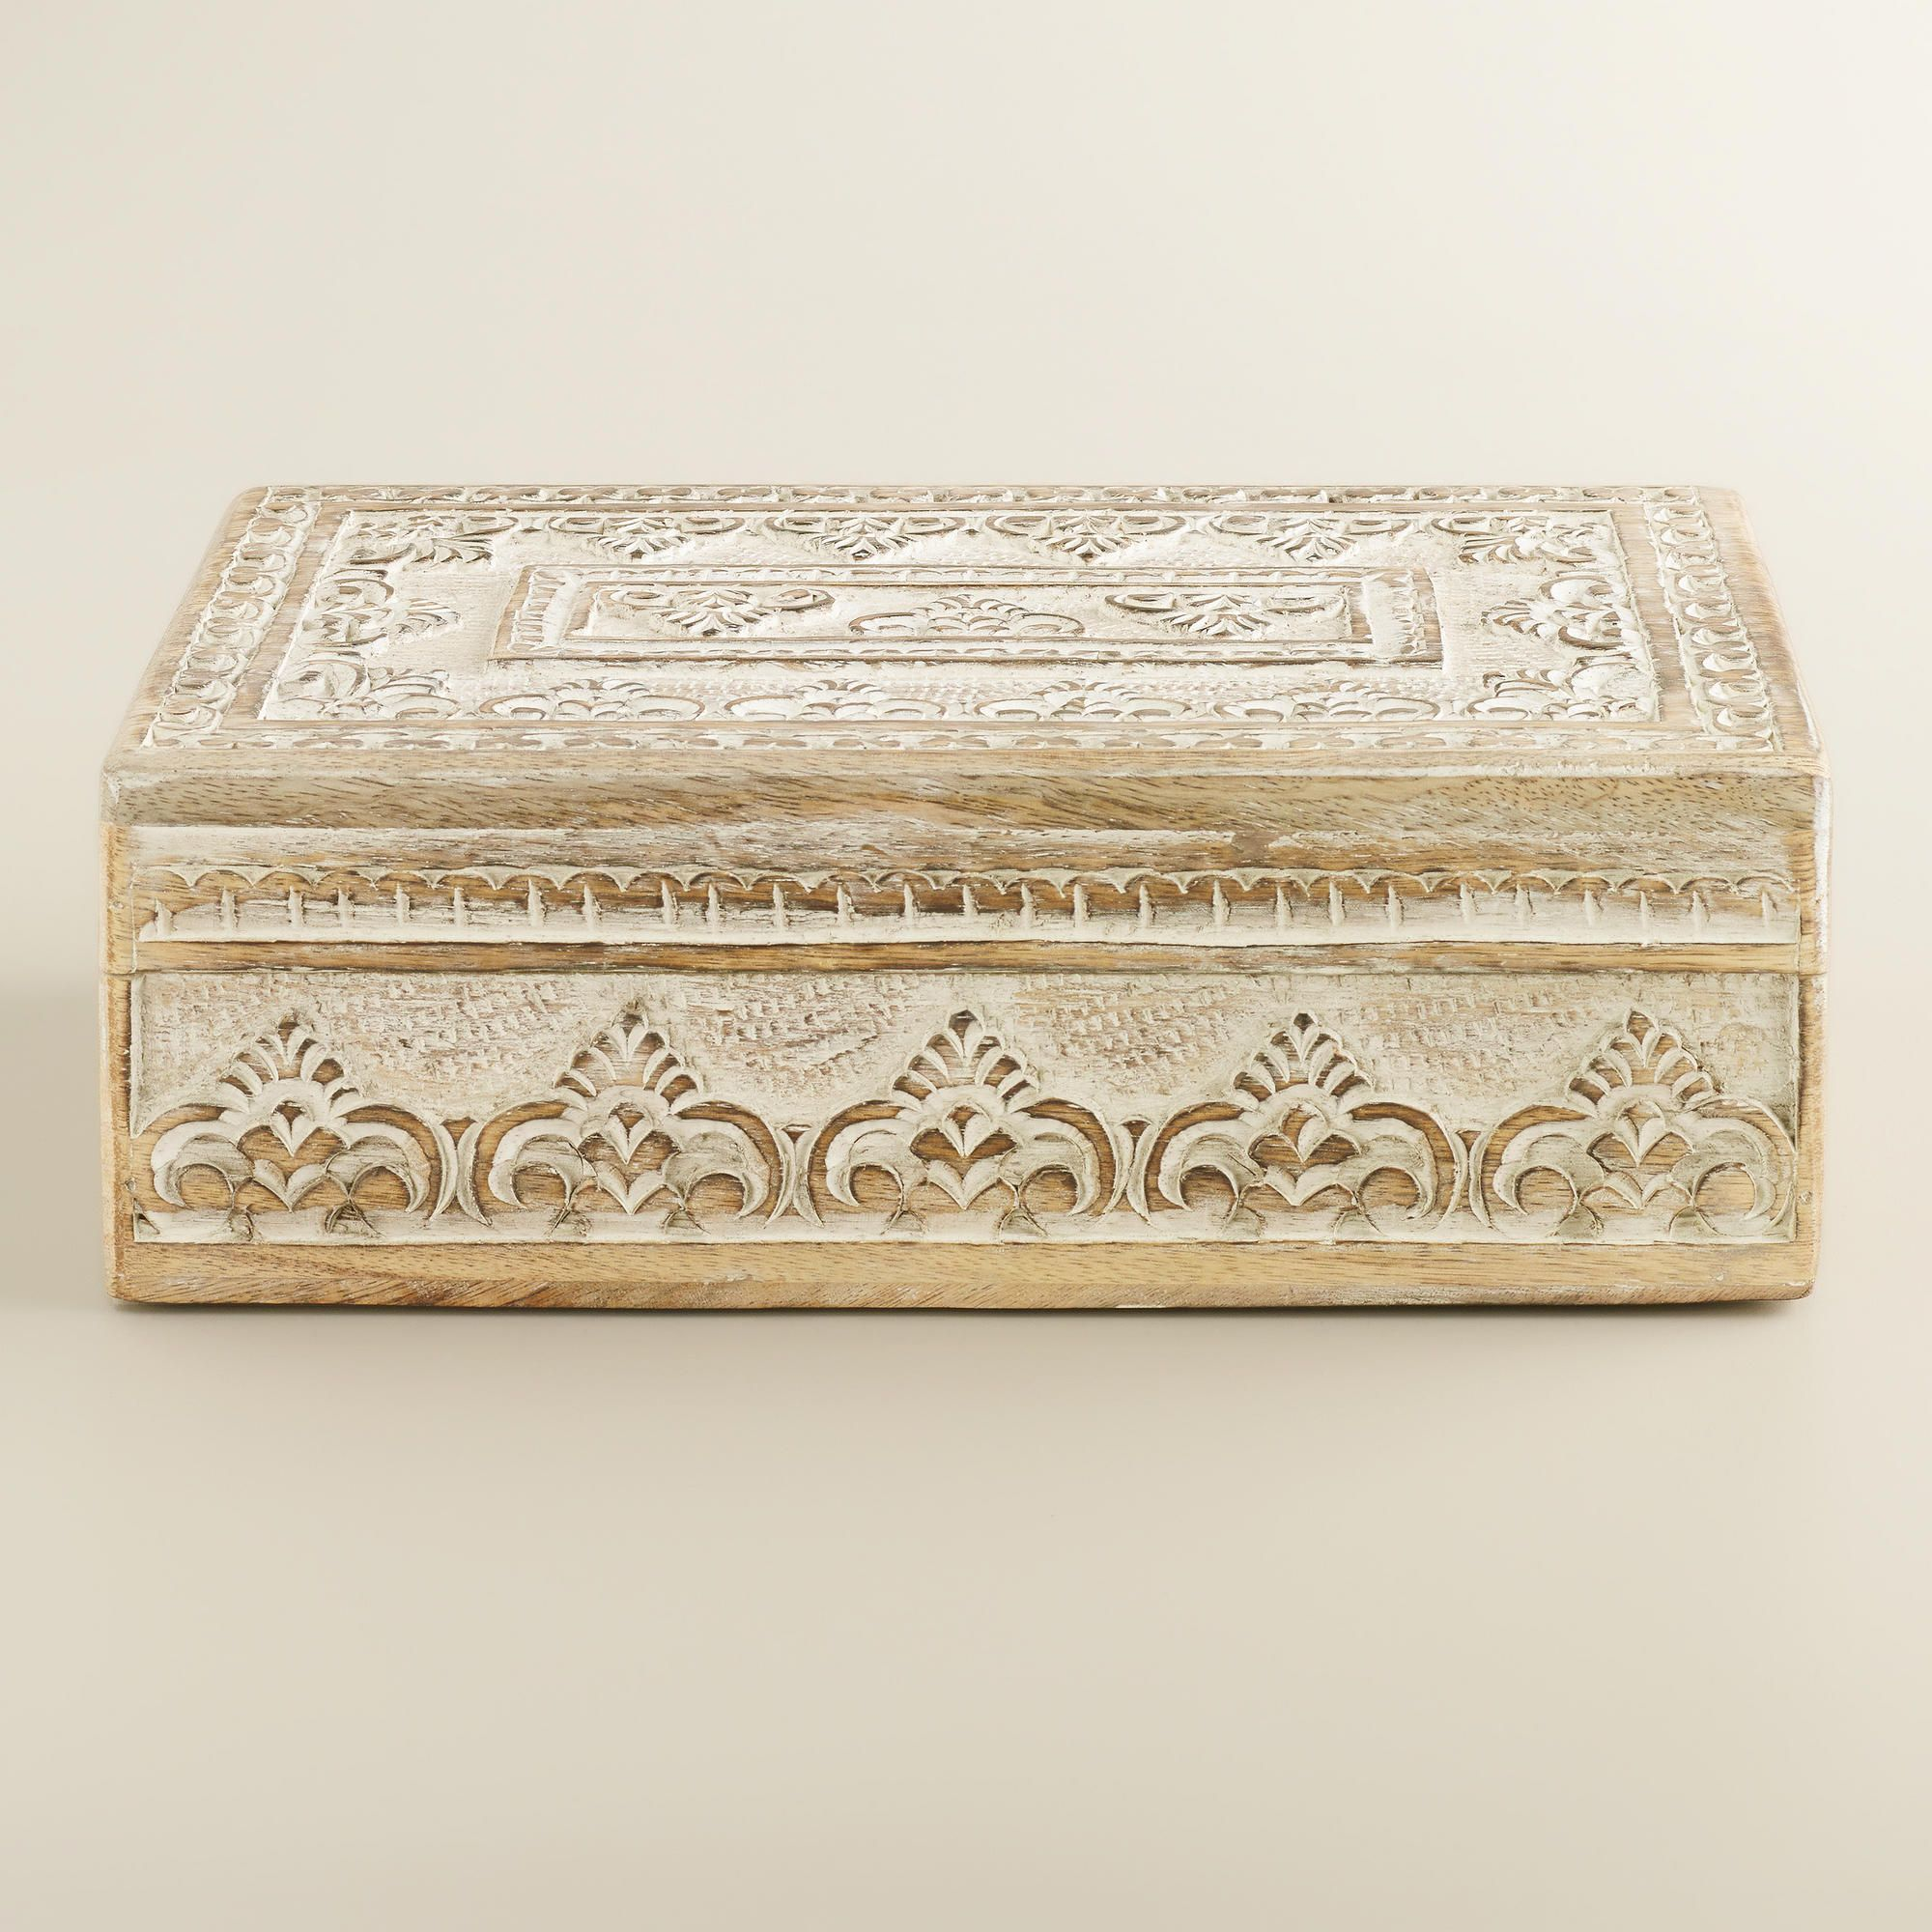 World Market Jewelry Box Classy Whitewash Carved Brooklyn Jewelry Box  World Market  Boudoir Design Inspiration